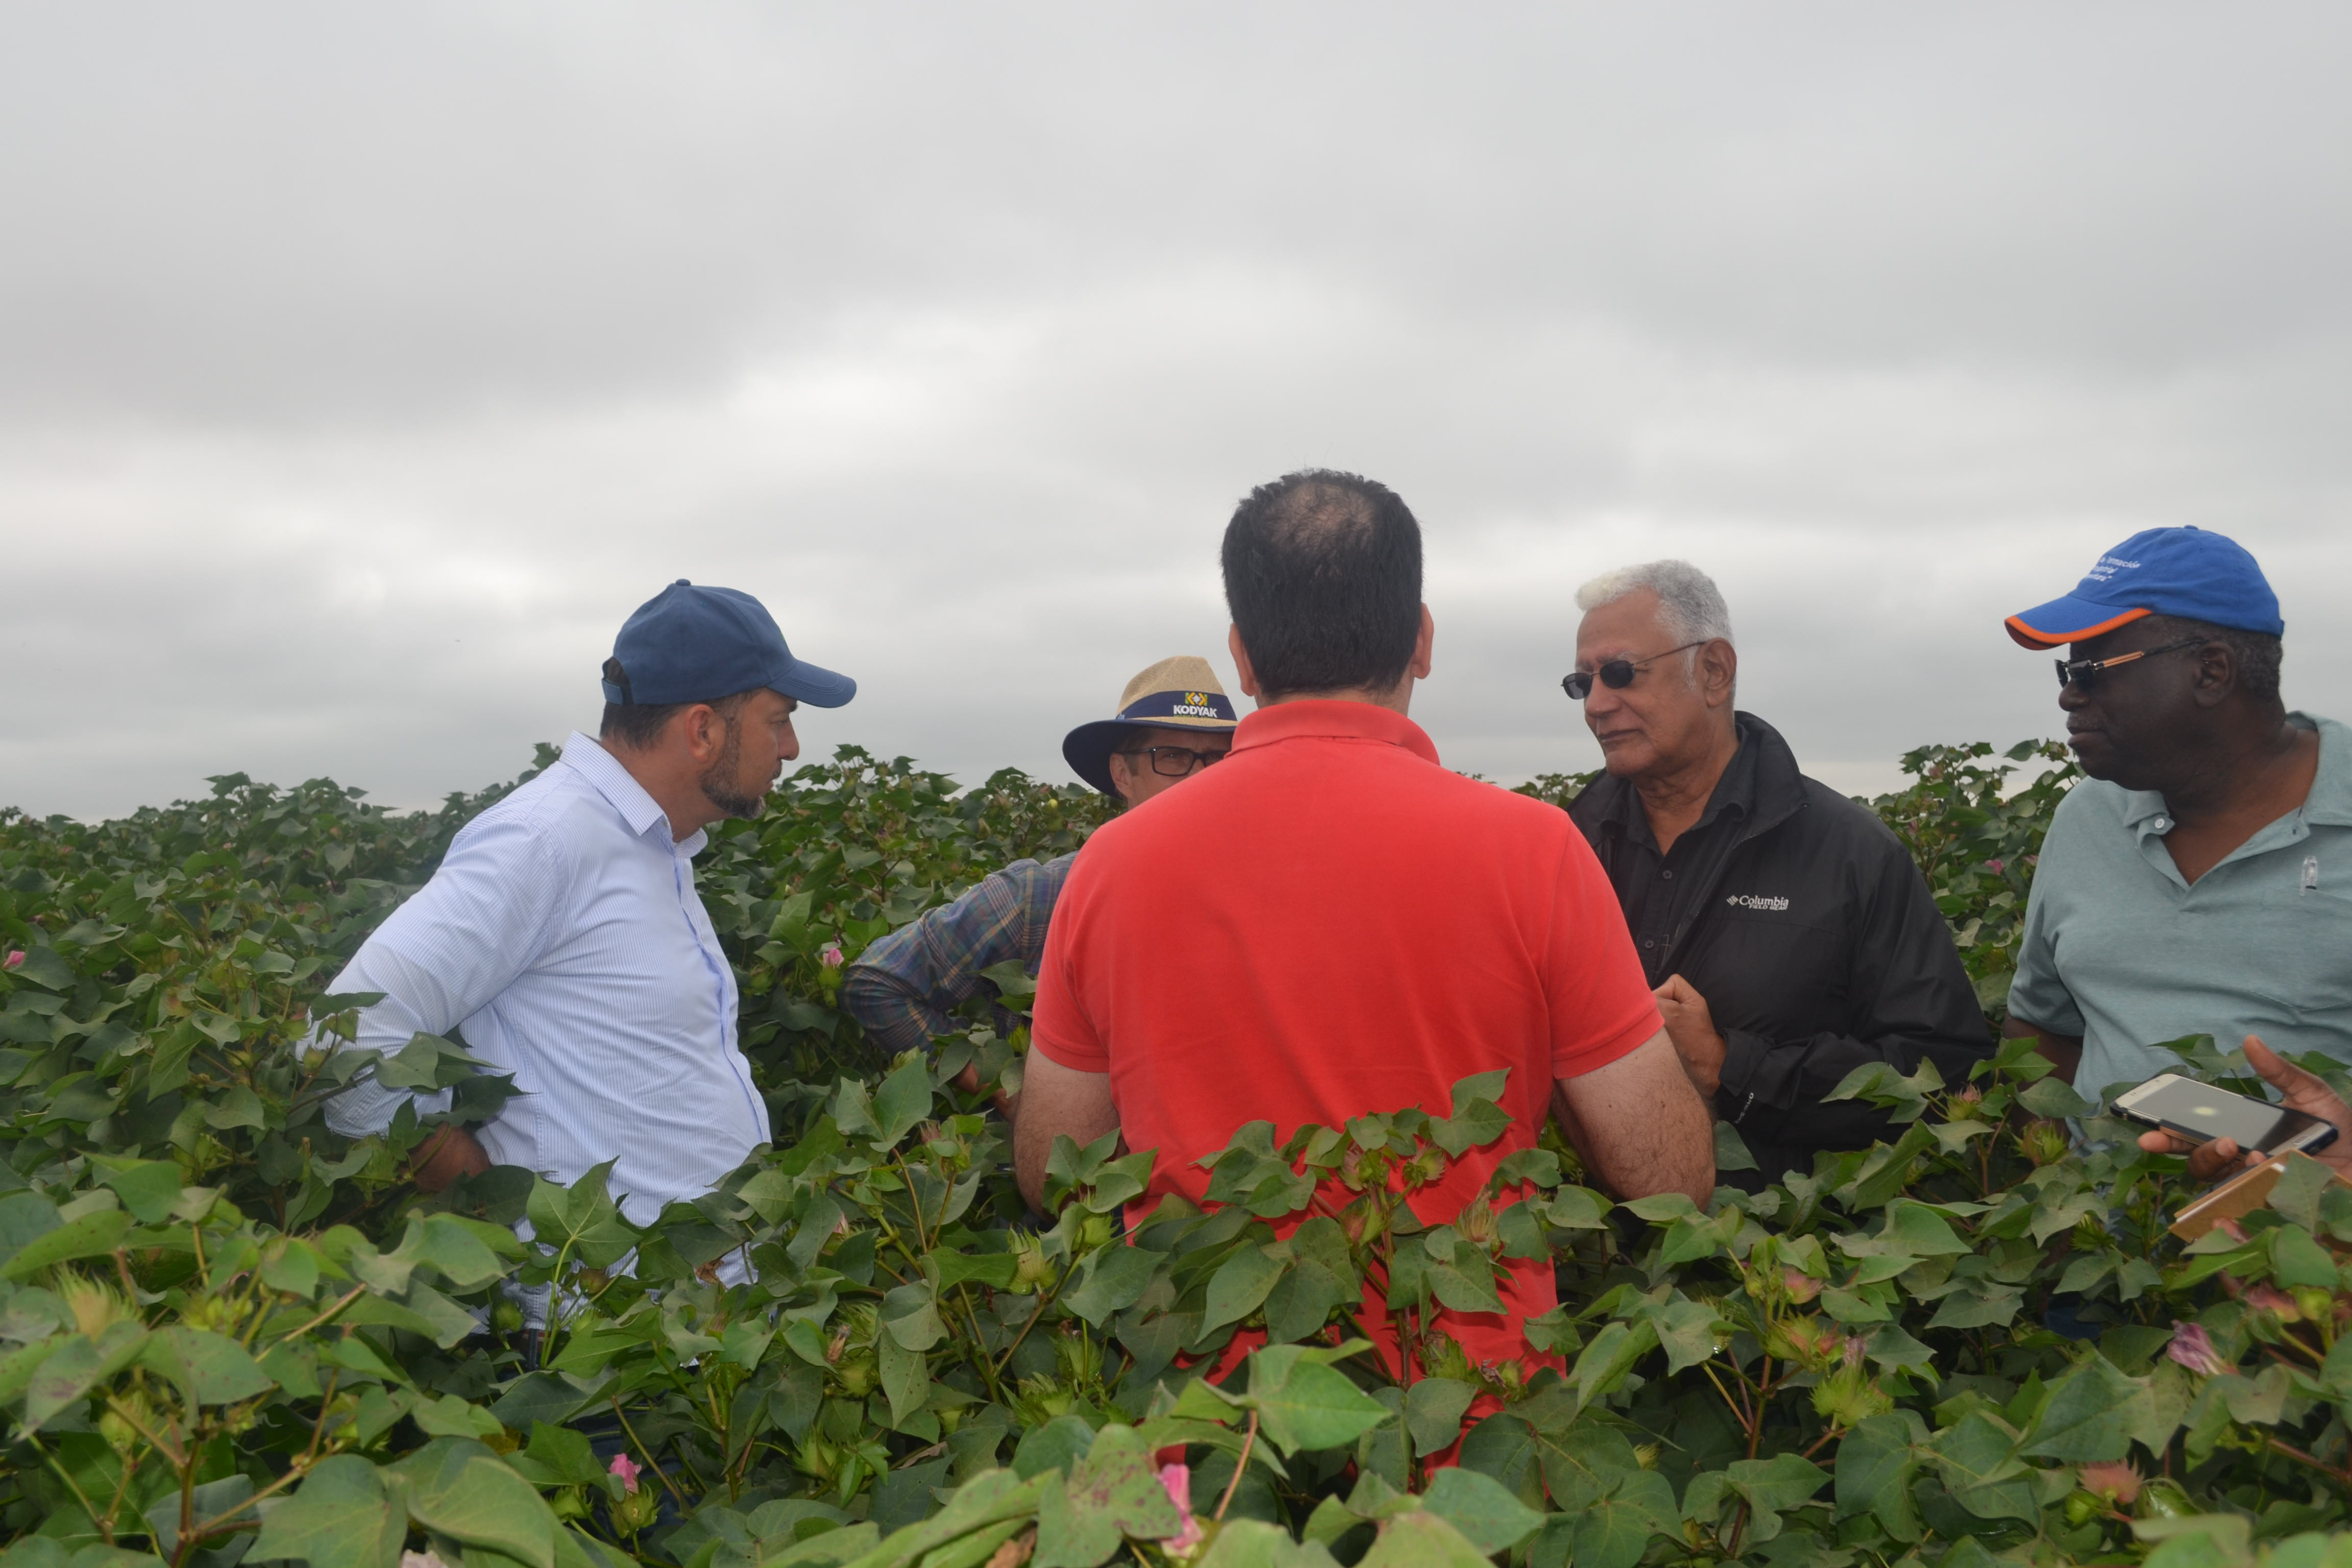 Minister Holder in discussion with some of the team while in a Soy Bean farm